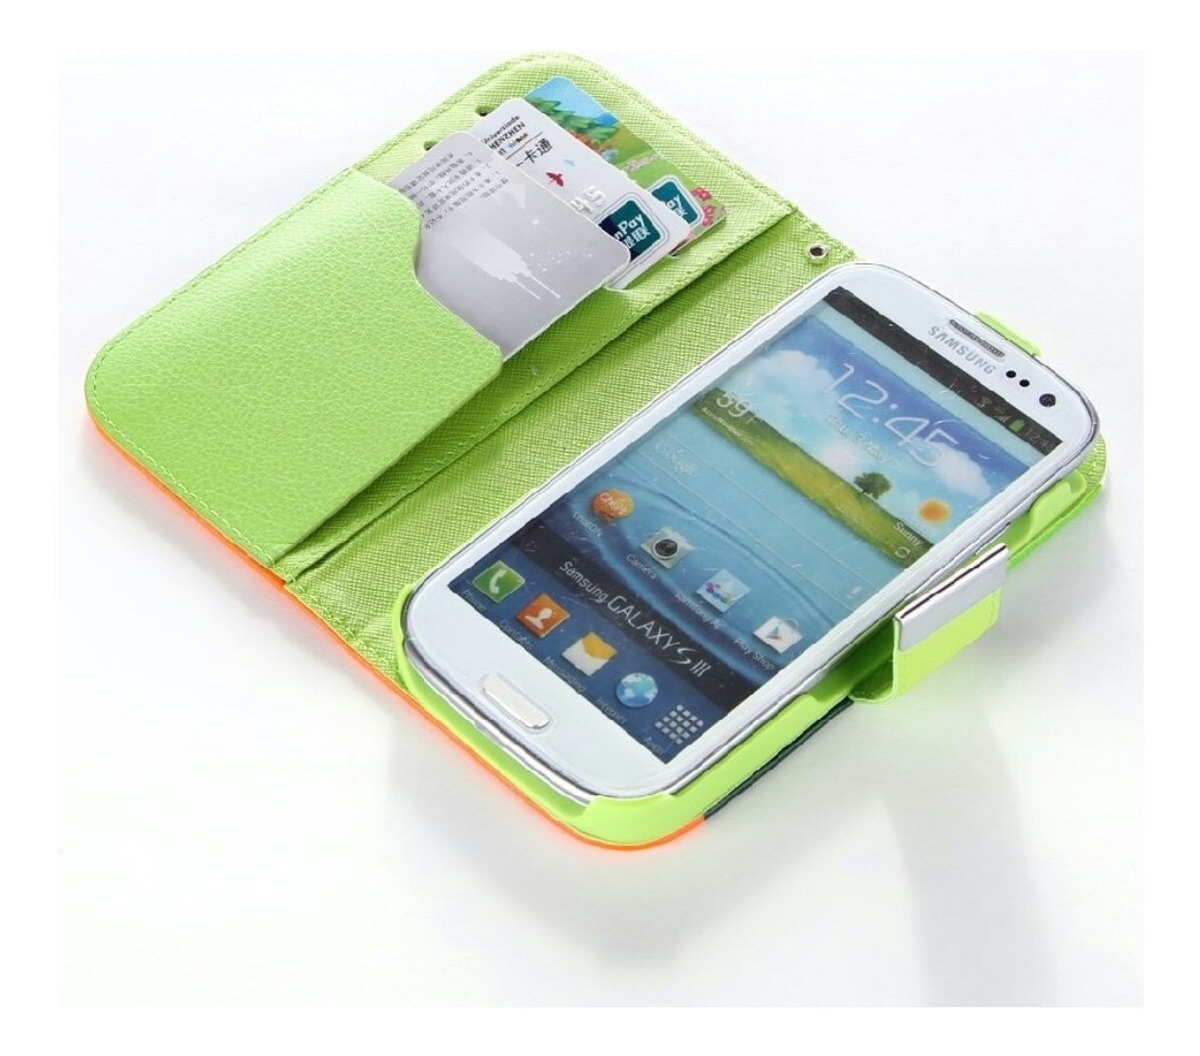 cd9c1e7a2be forro d cuero agenda samsung grand neo y grand duos + regalo. Cargando zoom.